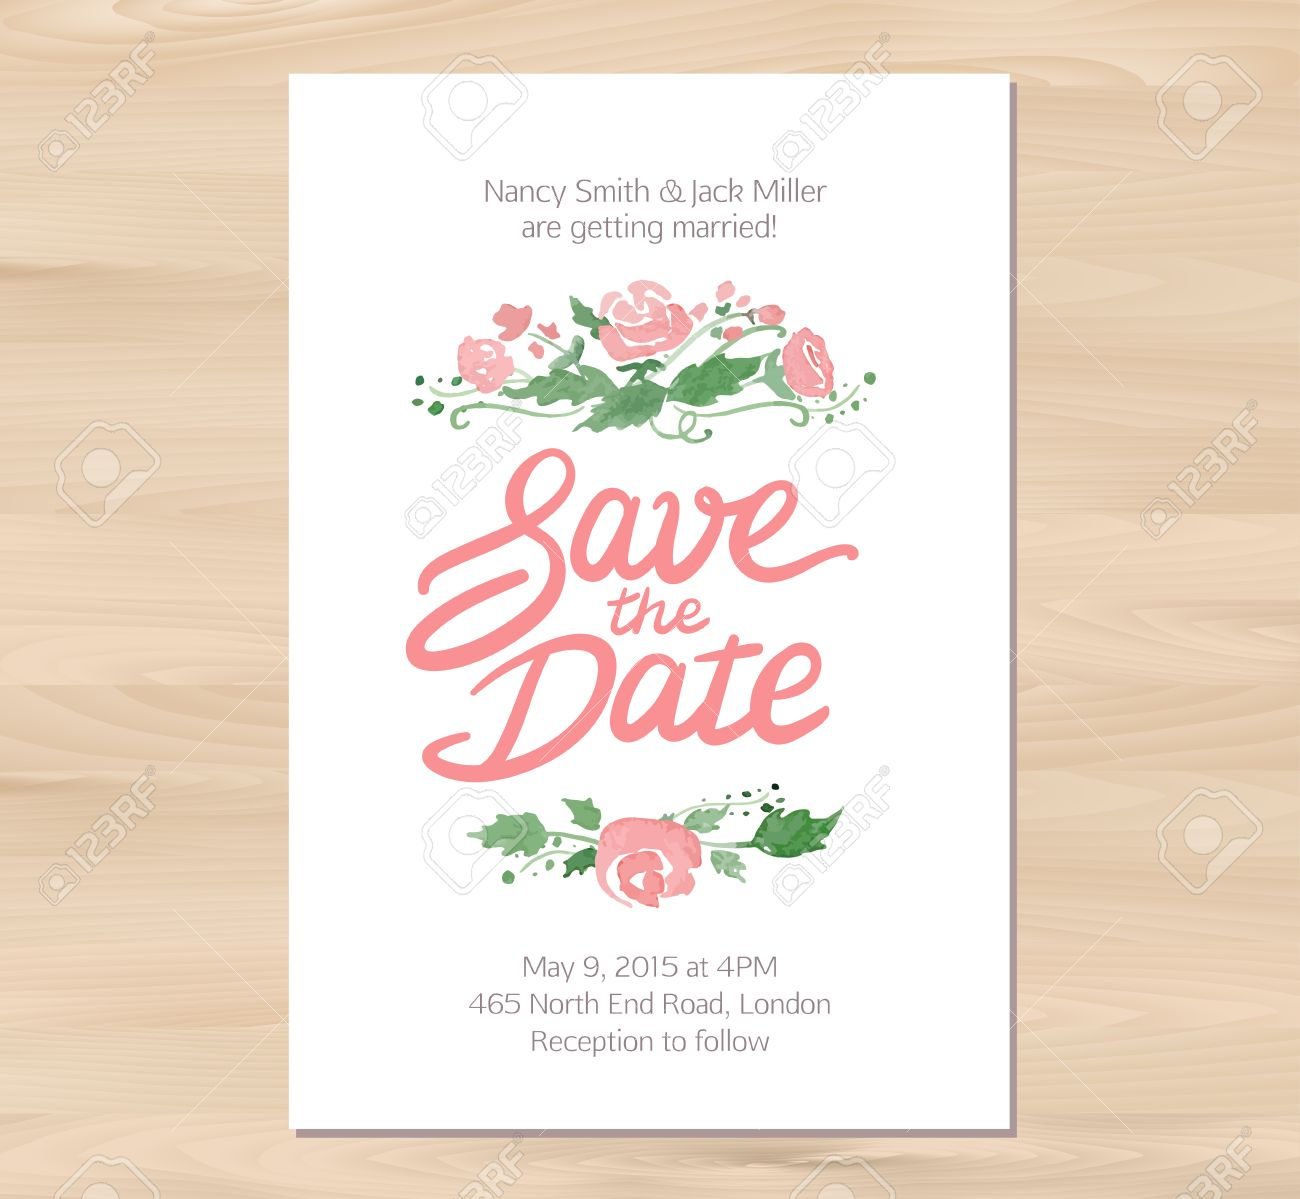 Vector Illustration - Save The Date Wedding Invitation With ...